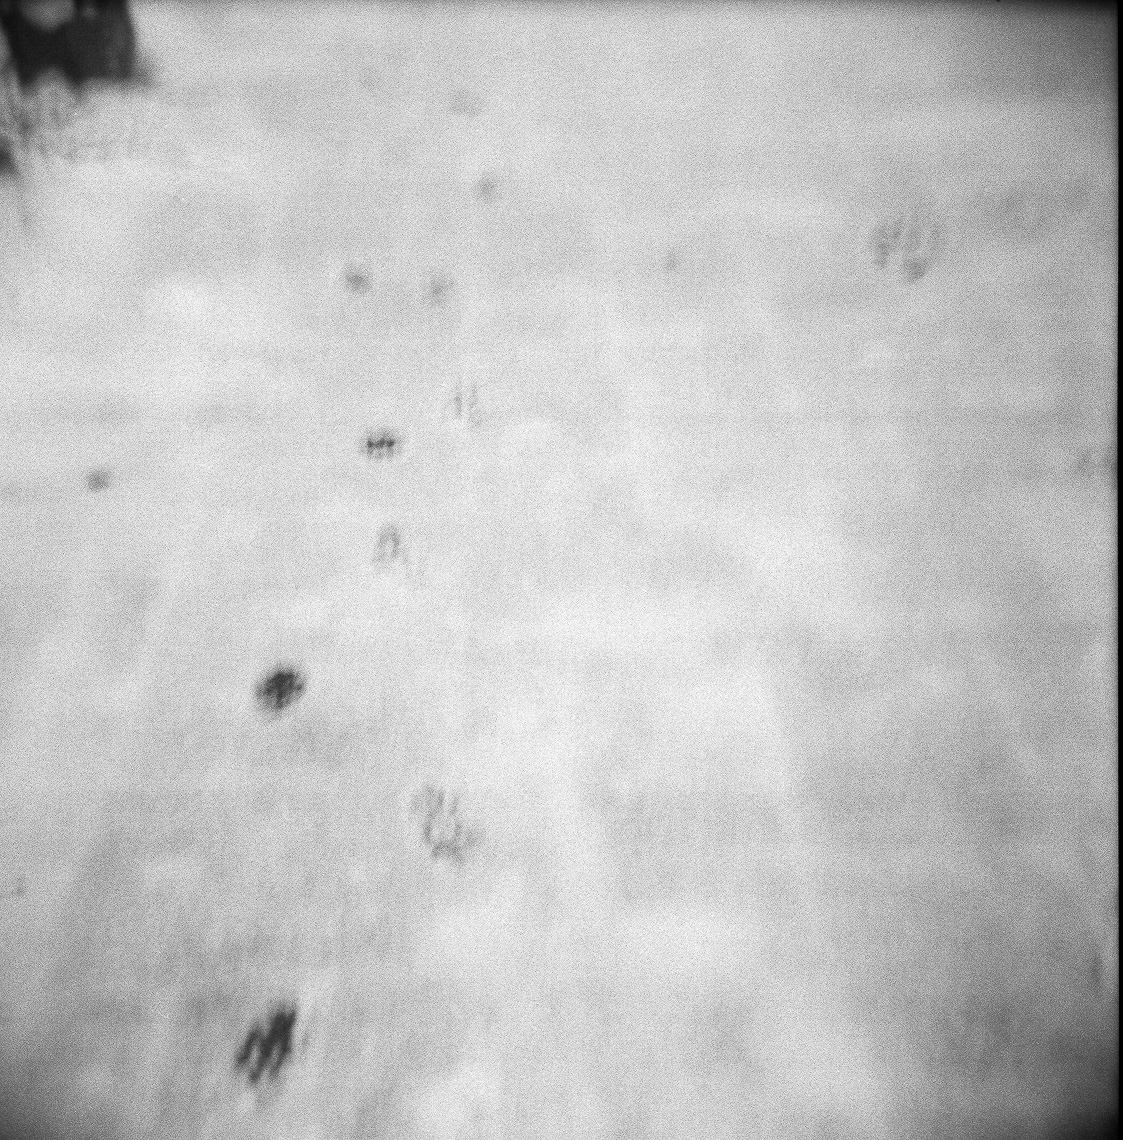 2013-14-PROJECTS-HOLGA-400-2_Ilford-Delta_TIW_scans-008-Edit